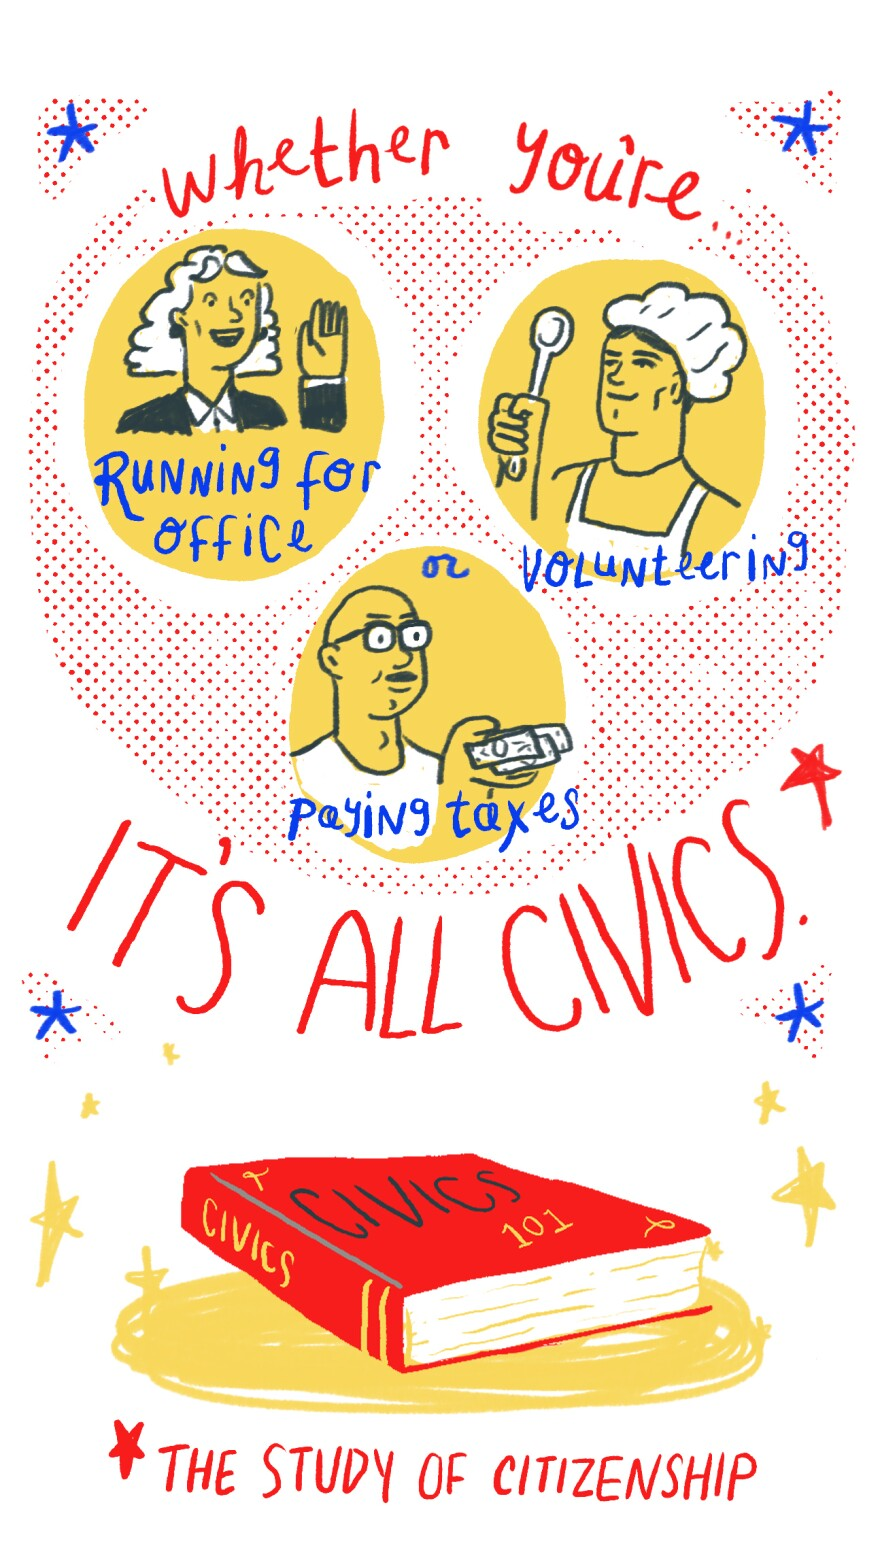 Whether you're running for office, volunteering or paying taxes, it's all civics (the study of citizenship).